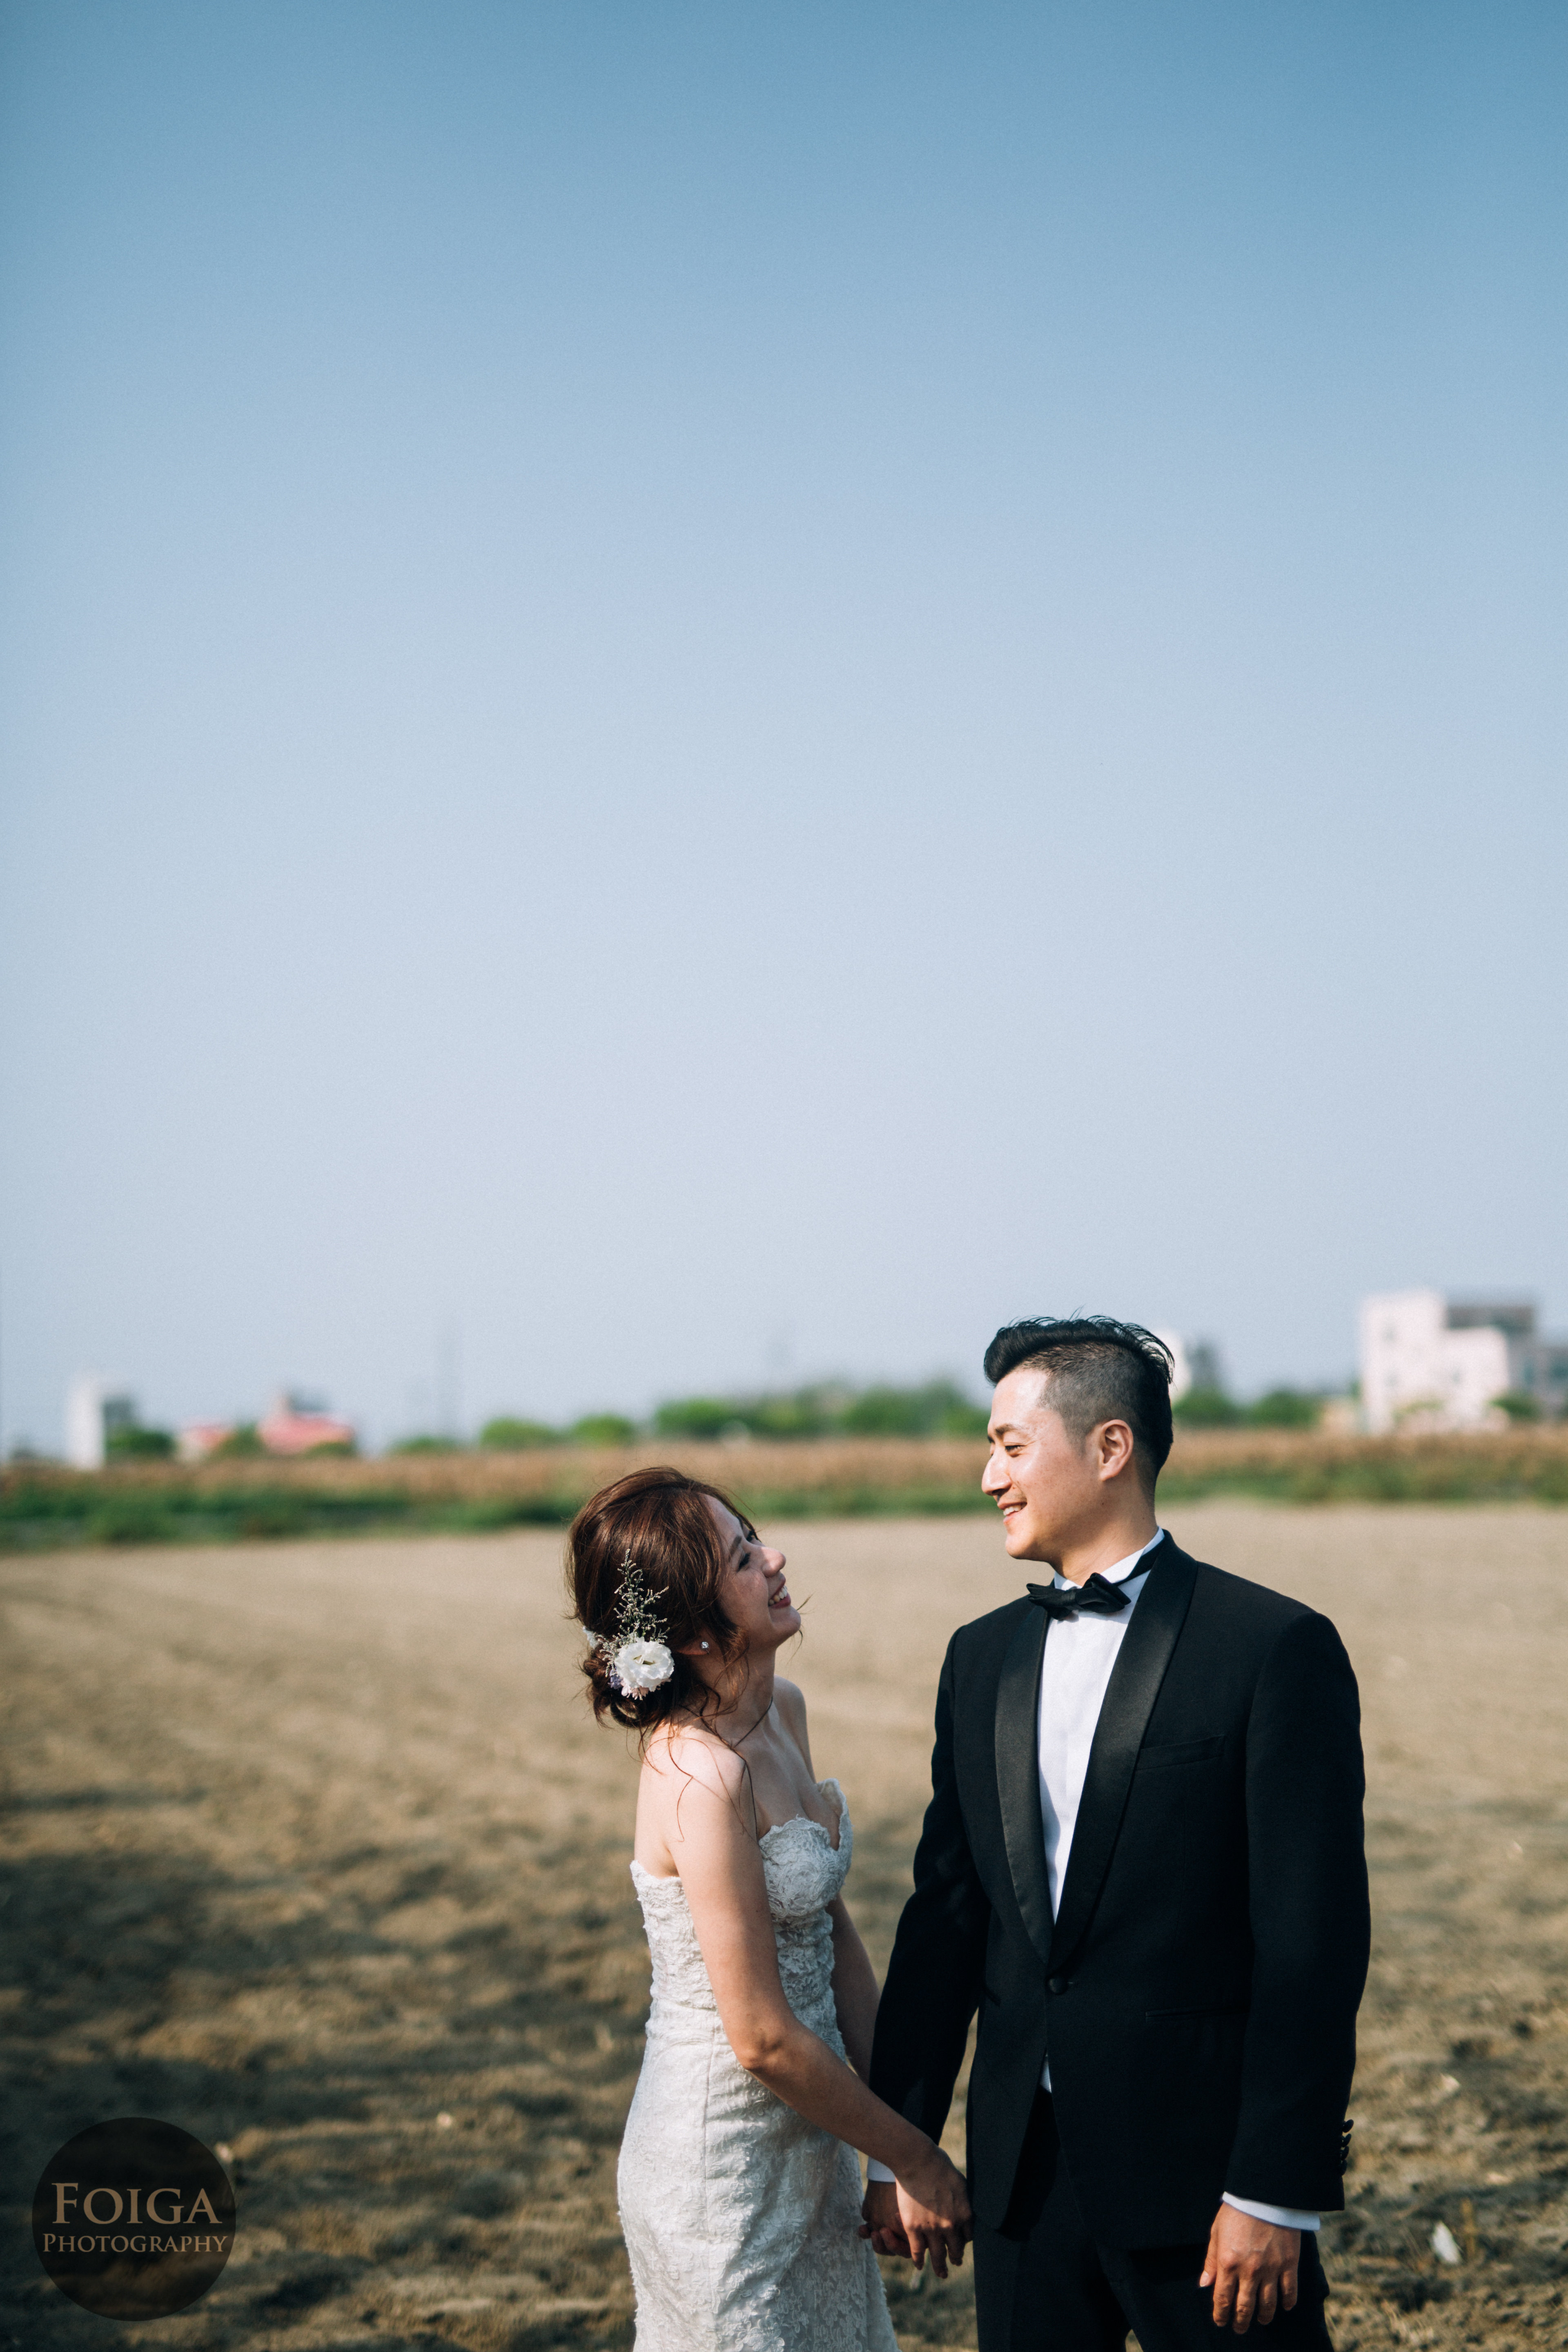 JasonandAmy_PreWedding-269